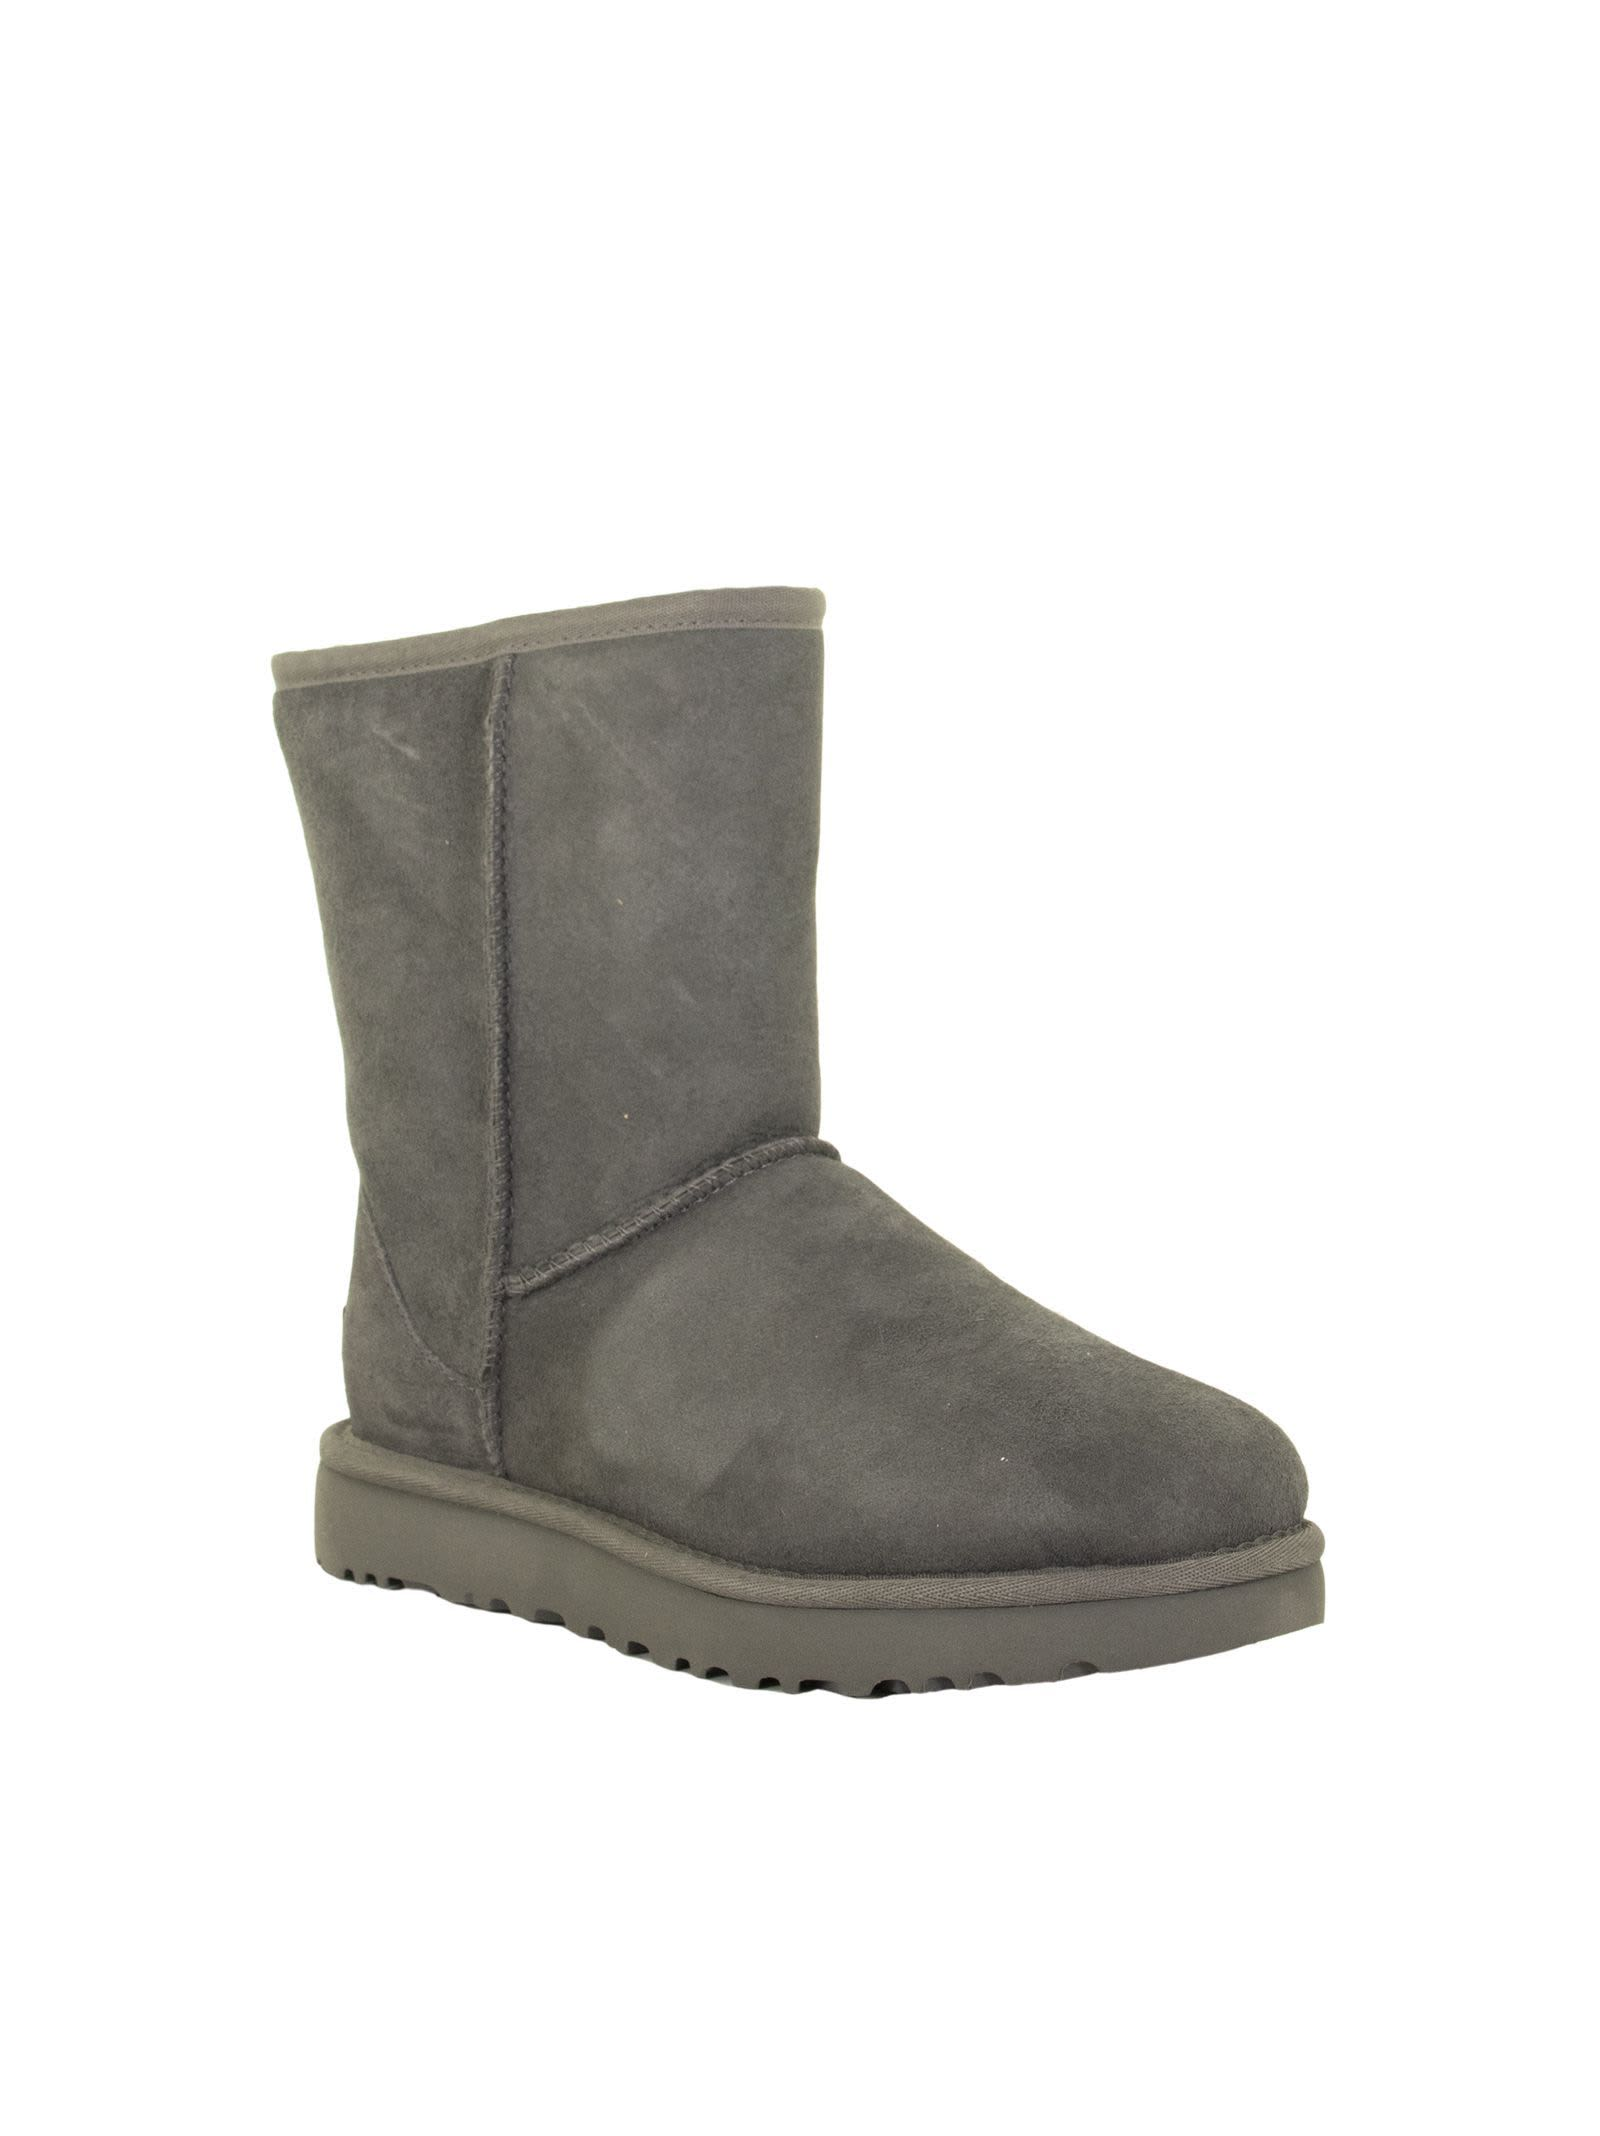 UGG Boots | italist, ALWAYS LIKE A SALE